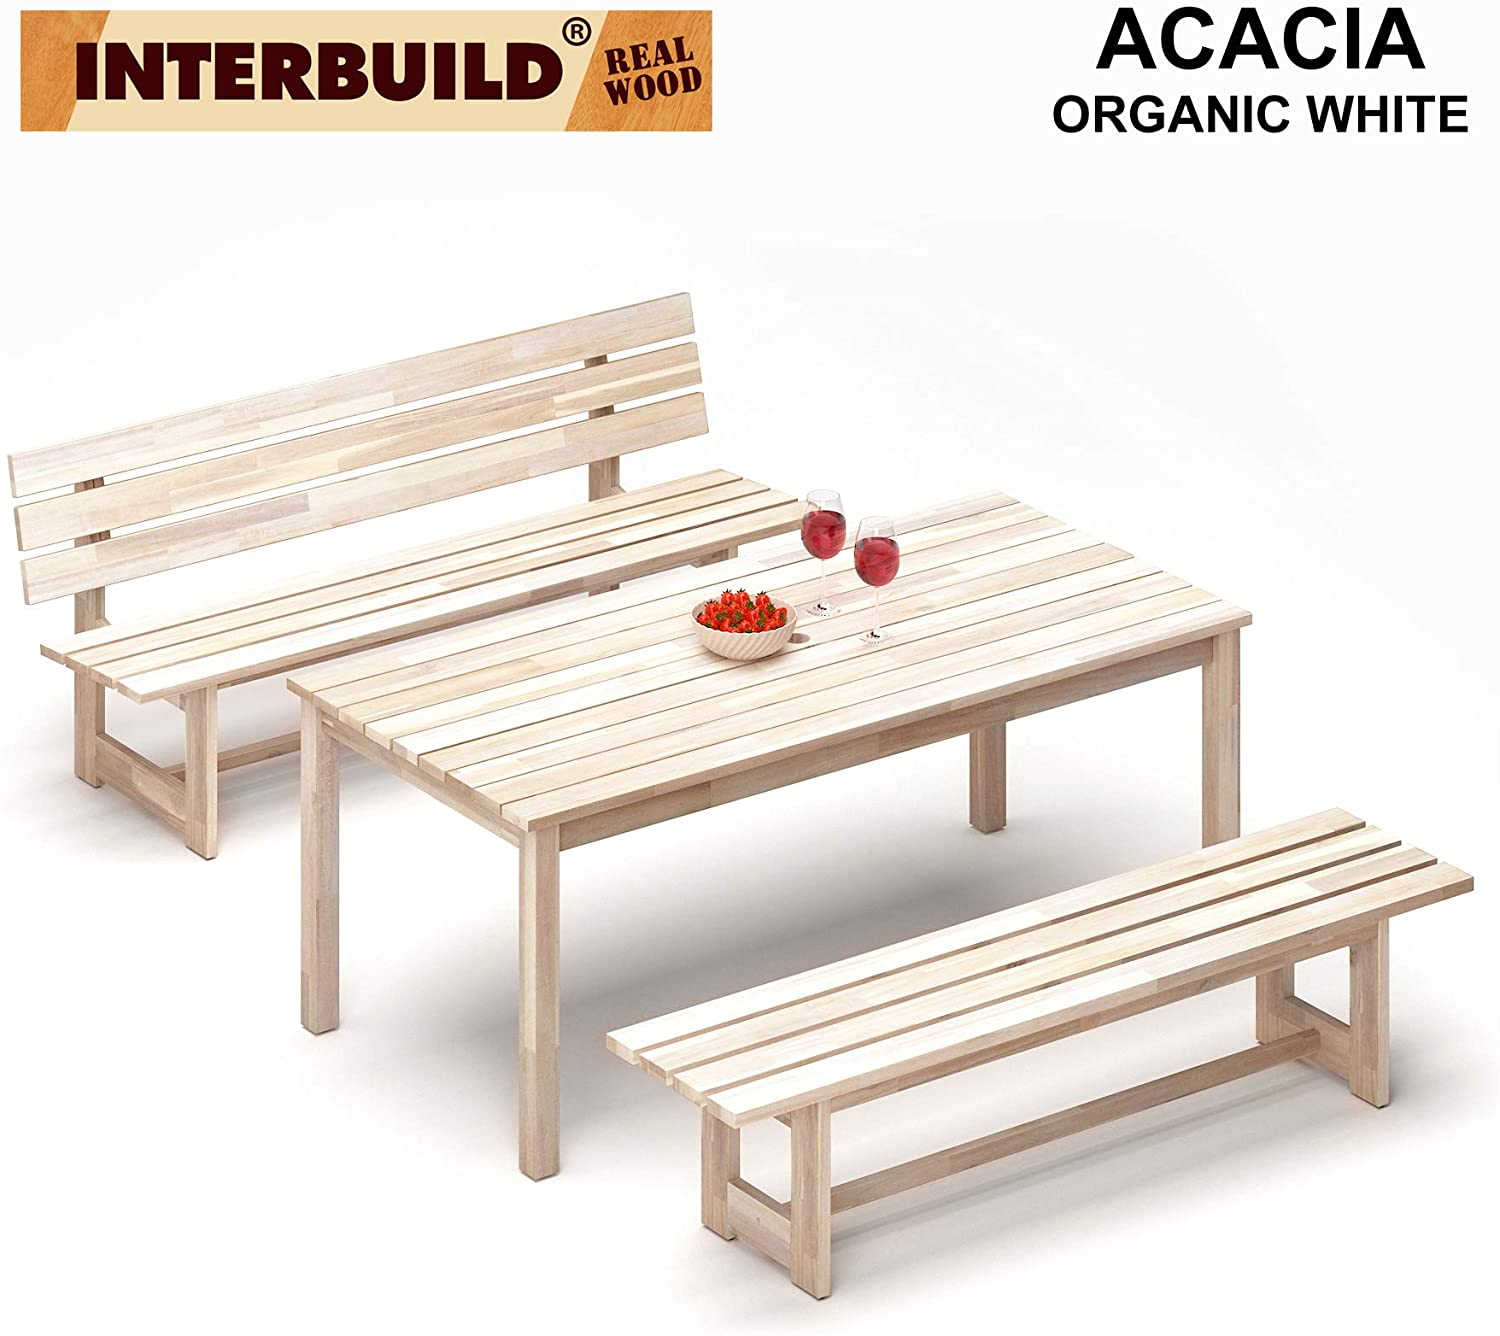 Peninsula 3 Pieces Outdoor Patio Furniture Set, (1 Table + 1 Bench with Back + 1 Bench Without Back) (Organic White)